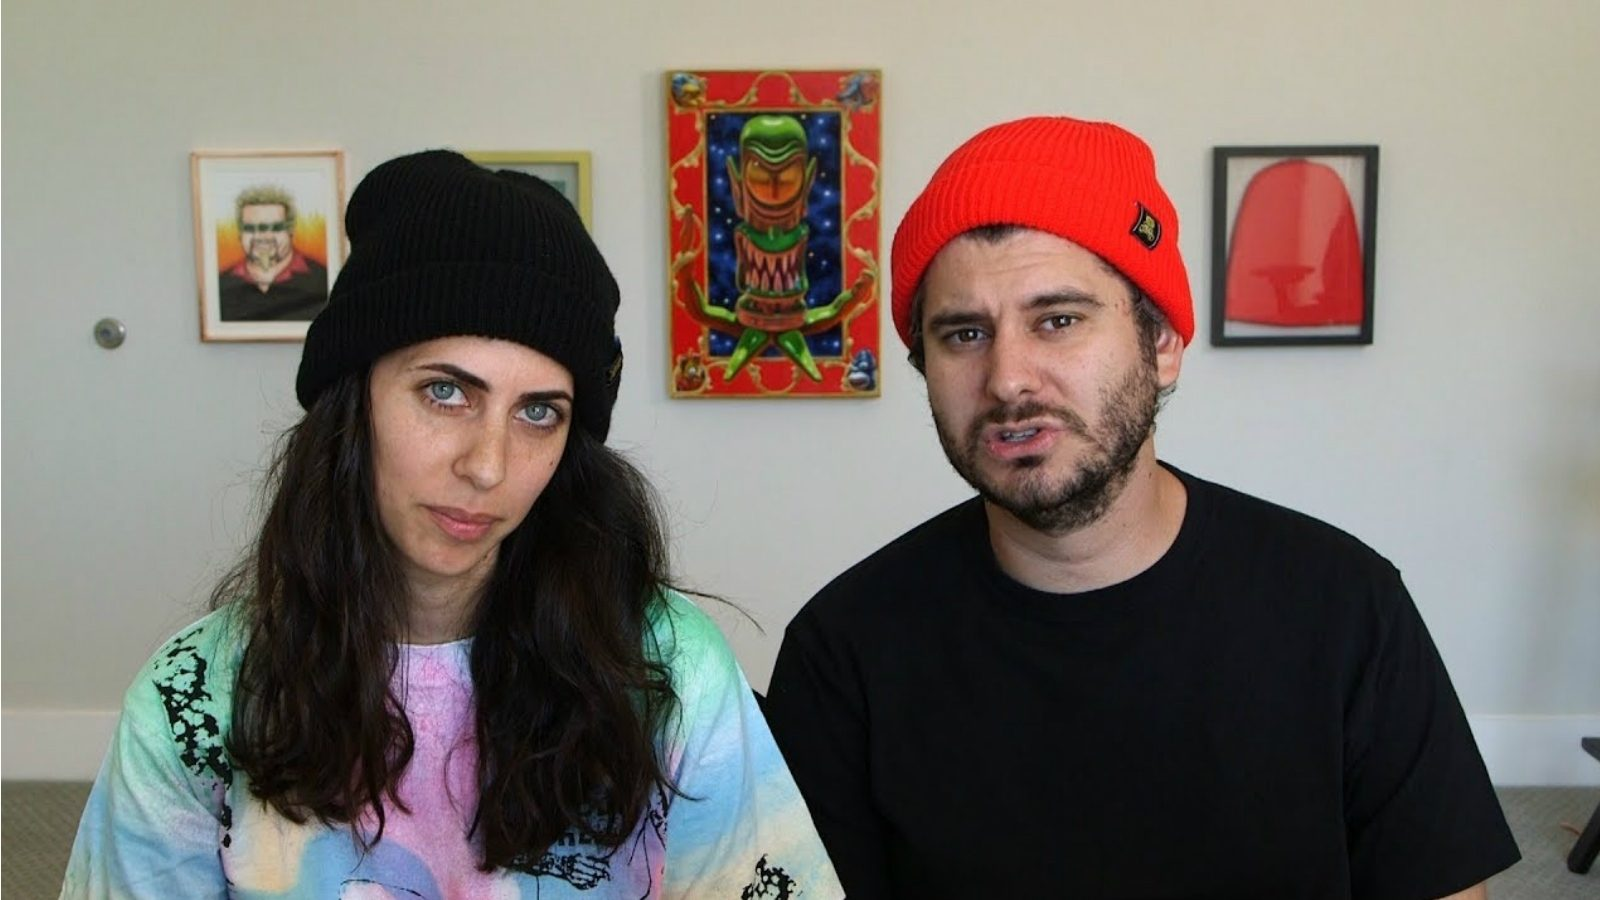 Ethan and Hila Klein have warned their viewers about the sinister nature of YouTube Kids. (Image via Dexerto)